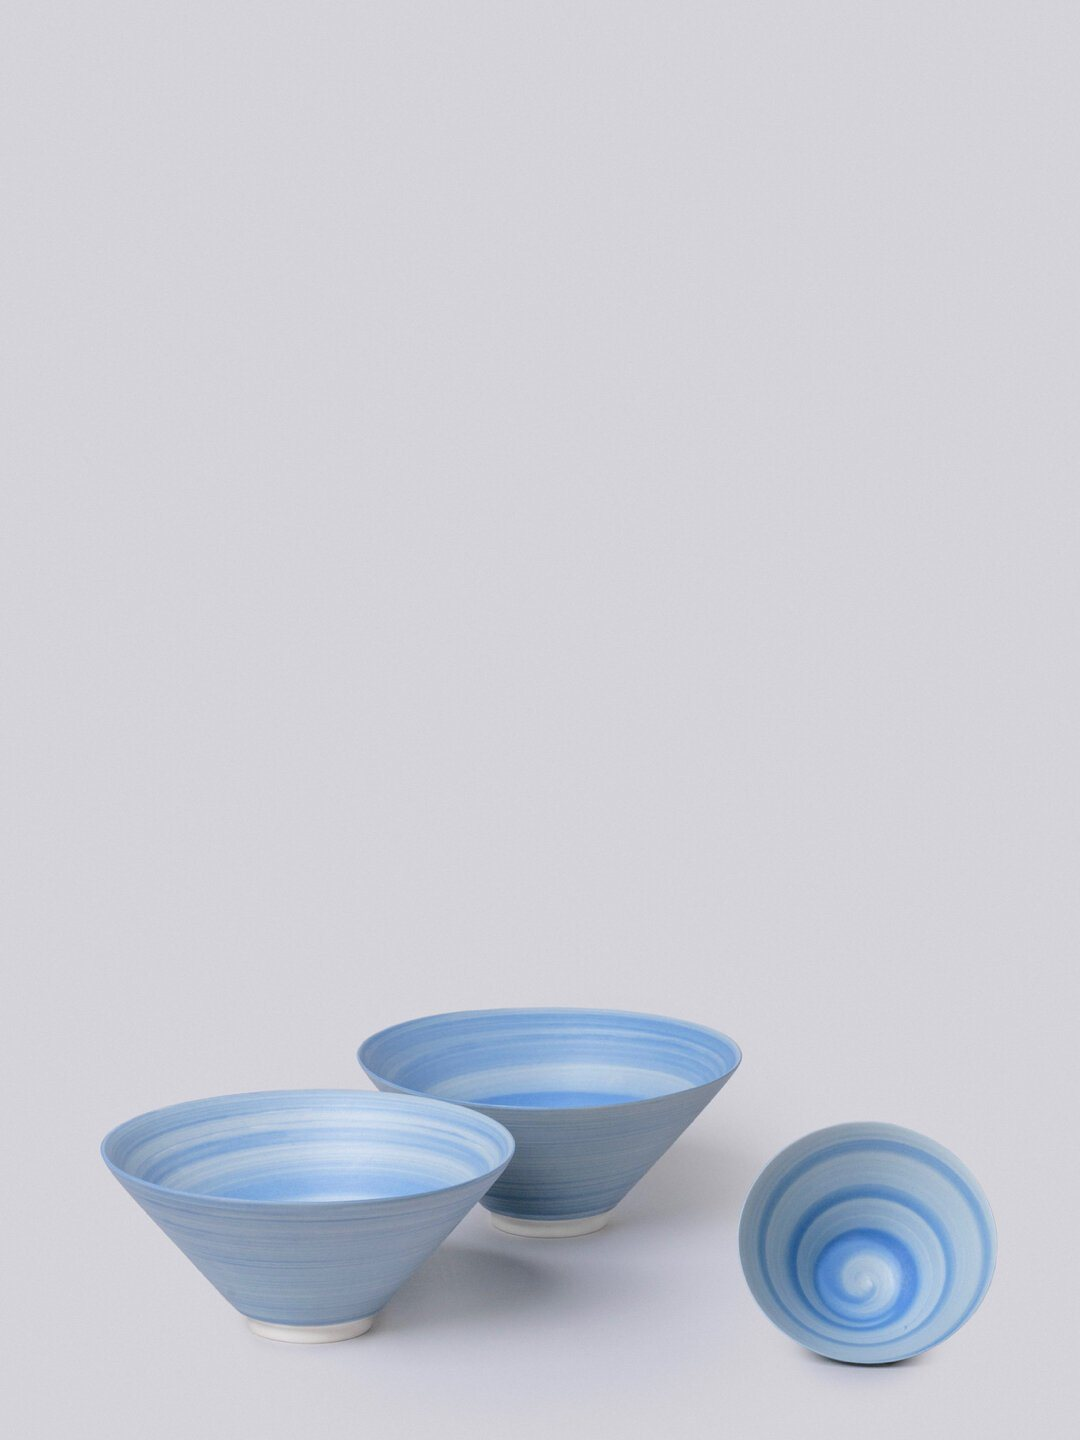 Middle Kingdom Conical Porcelain Bowl - Cornflower Kitchen and Dining Middle Kingdom